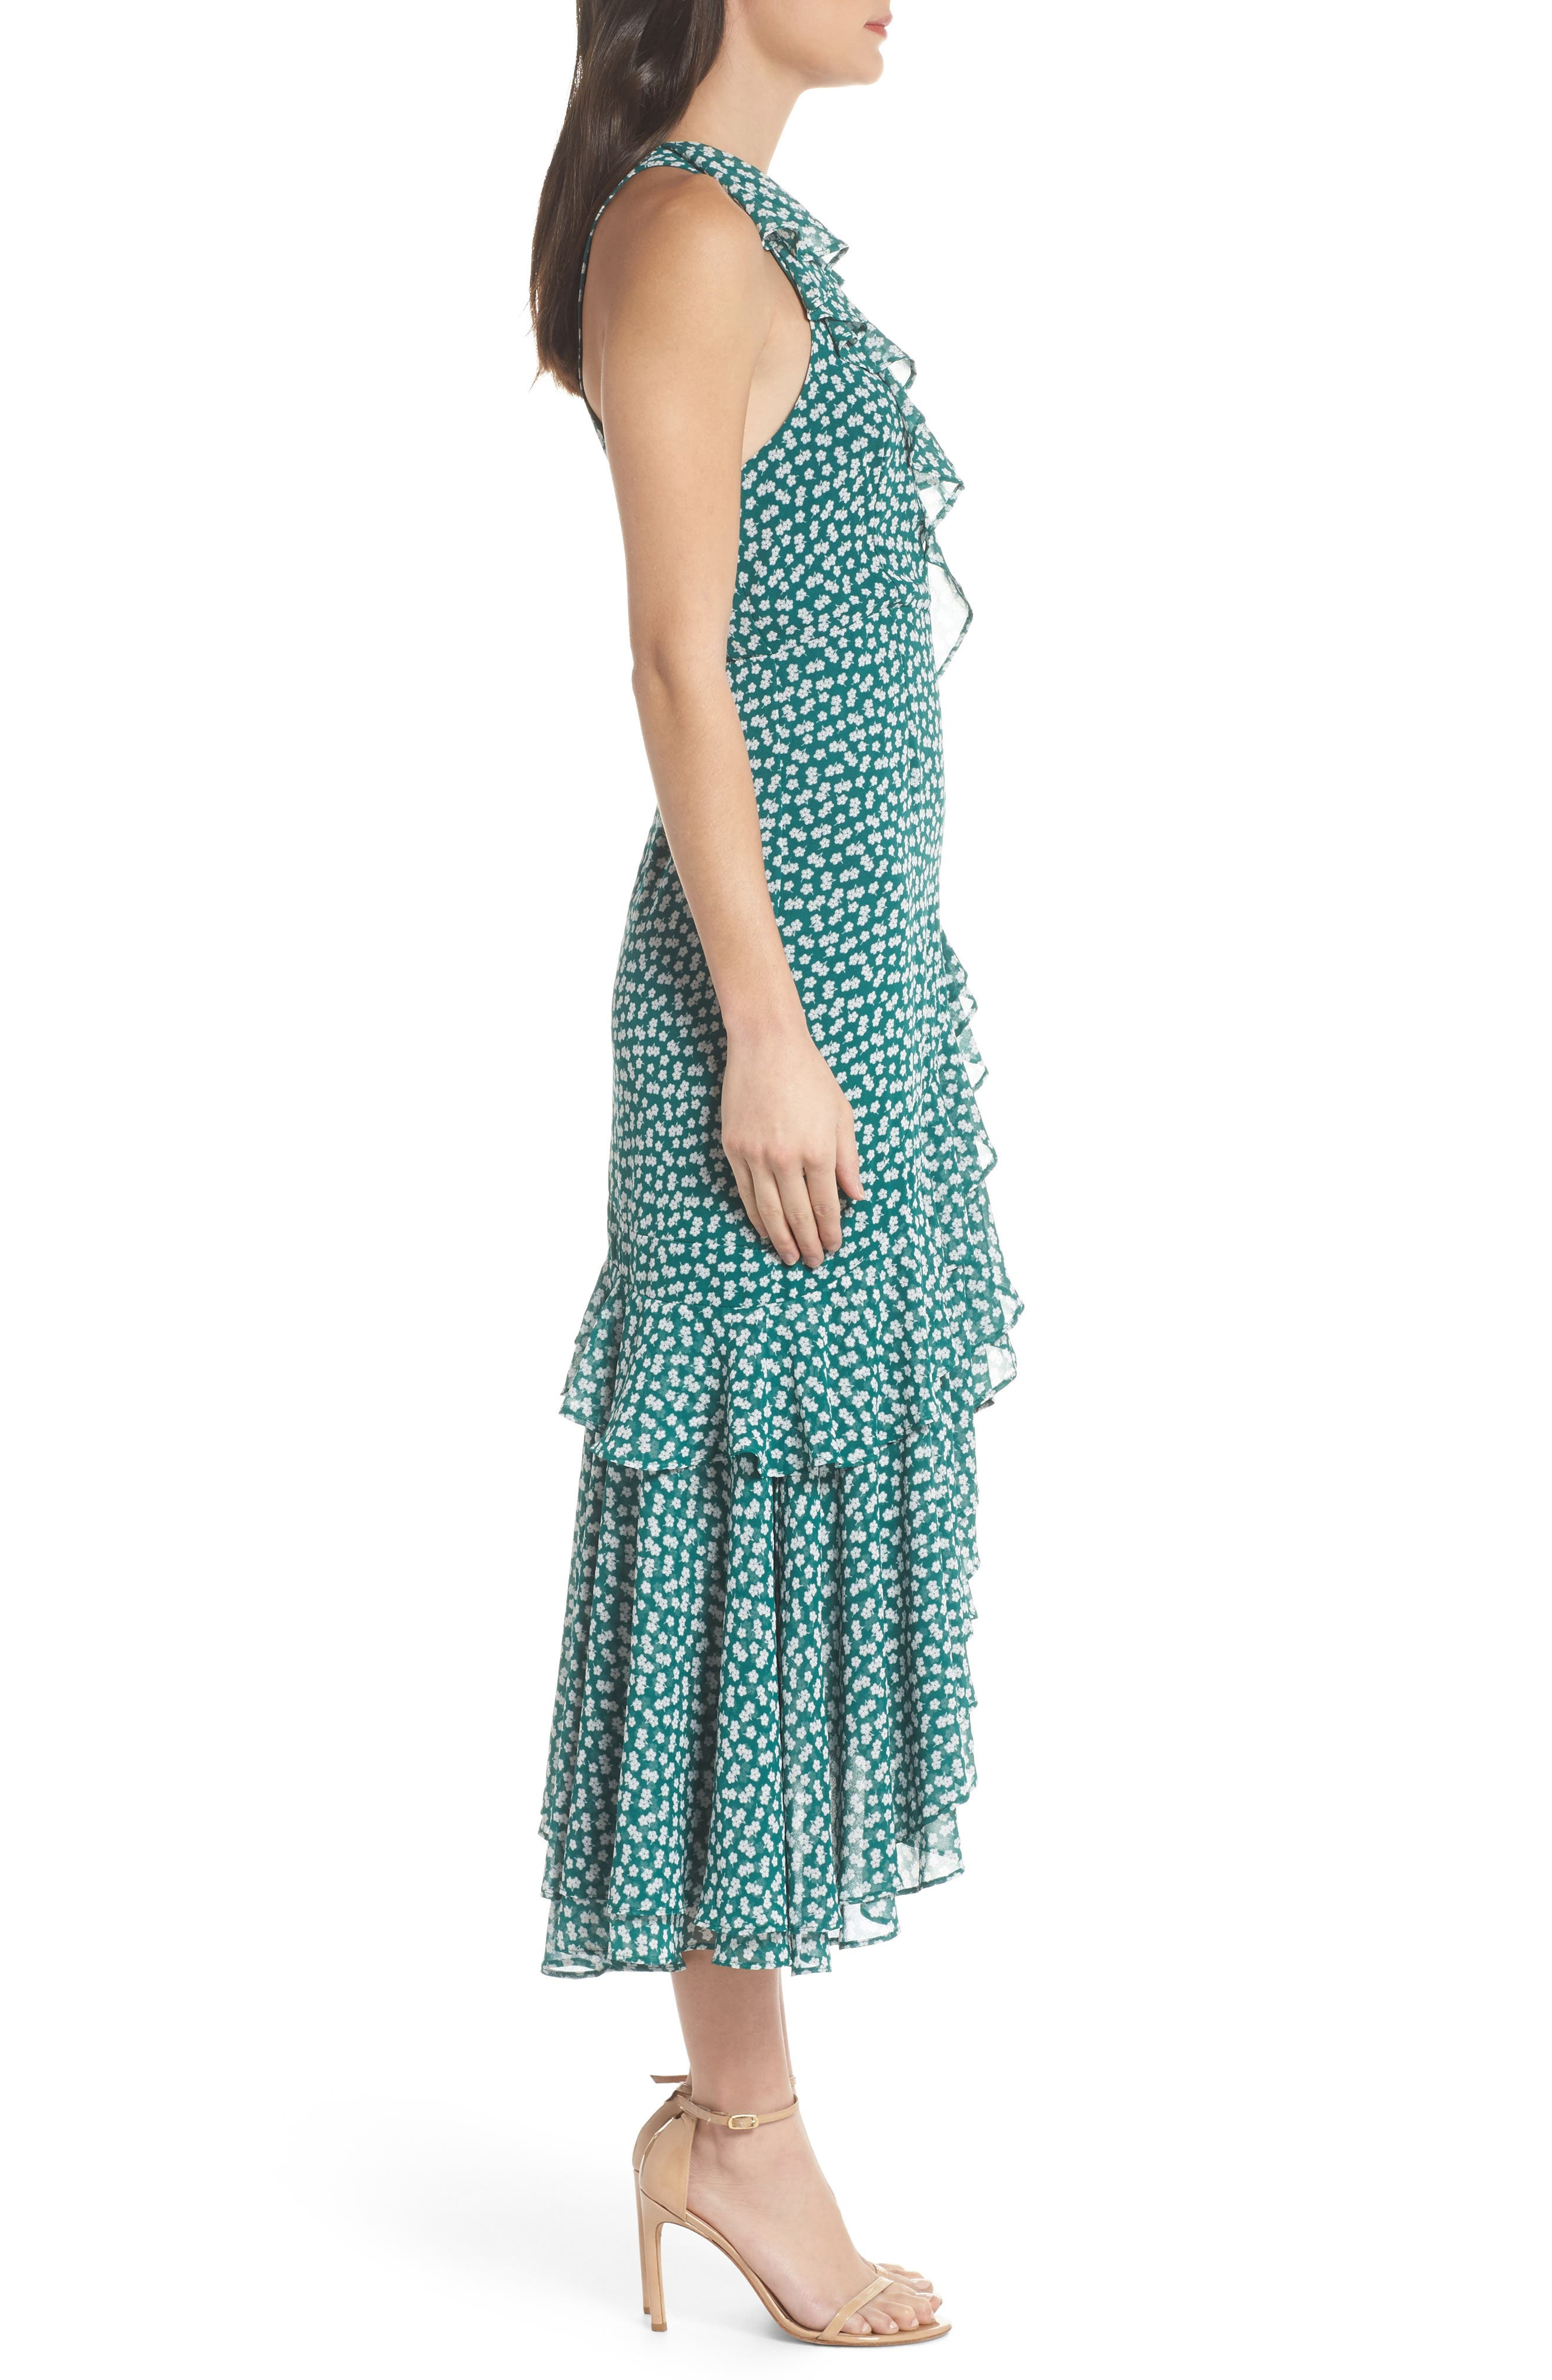 Be About You Ruffle Midi Dress,                             Alternate thumbnail 3, color,                             303